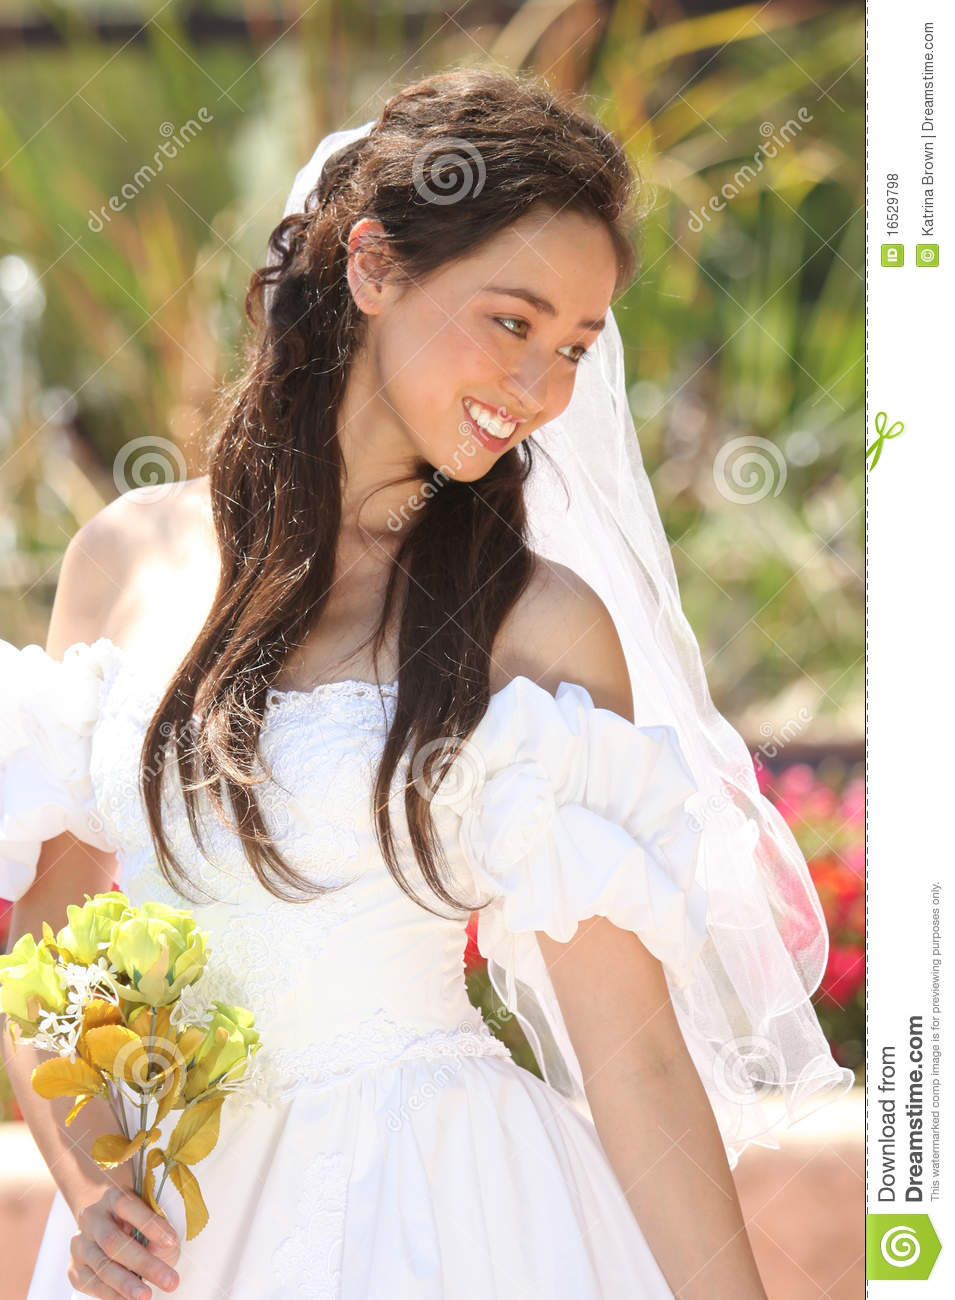 Beautiful Young Bride On Her Wedding Day Royalty Free